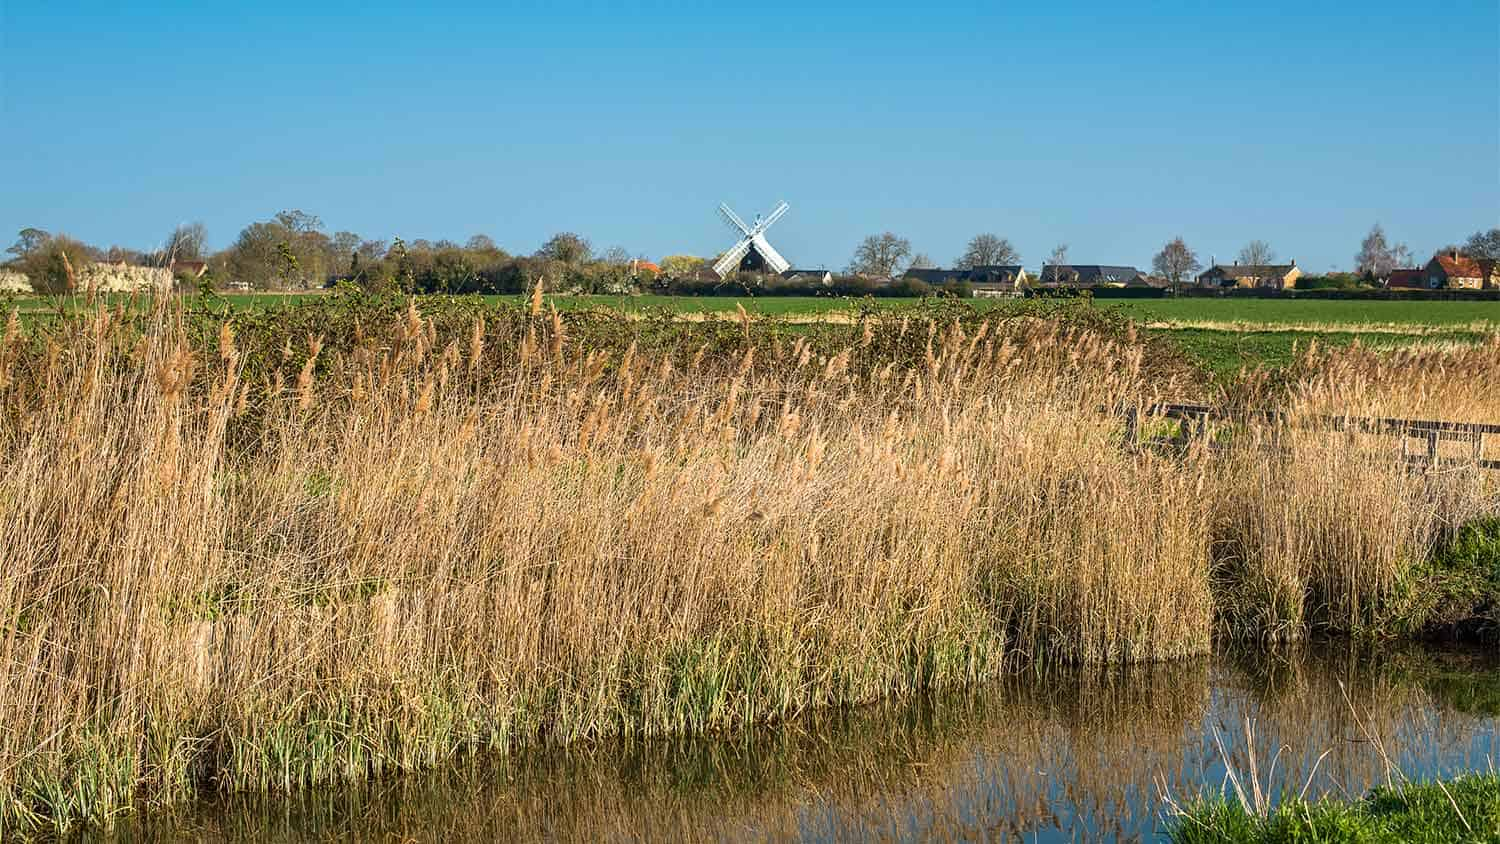 Windmill in a marshy field